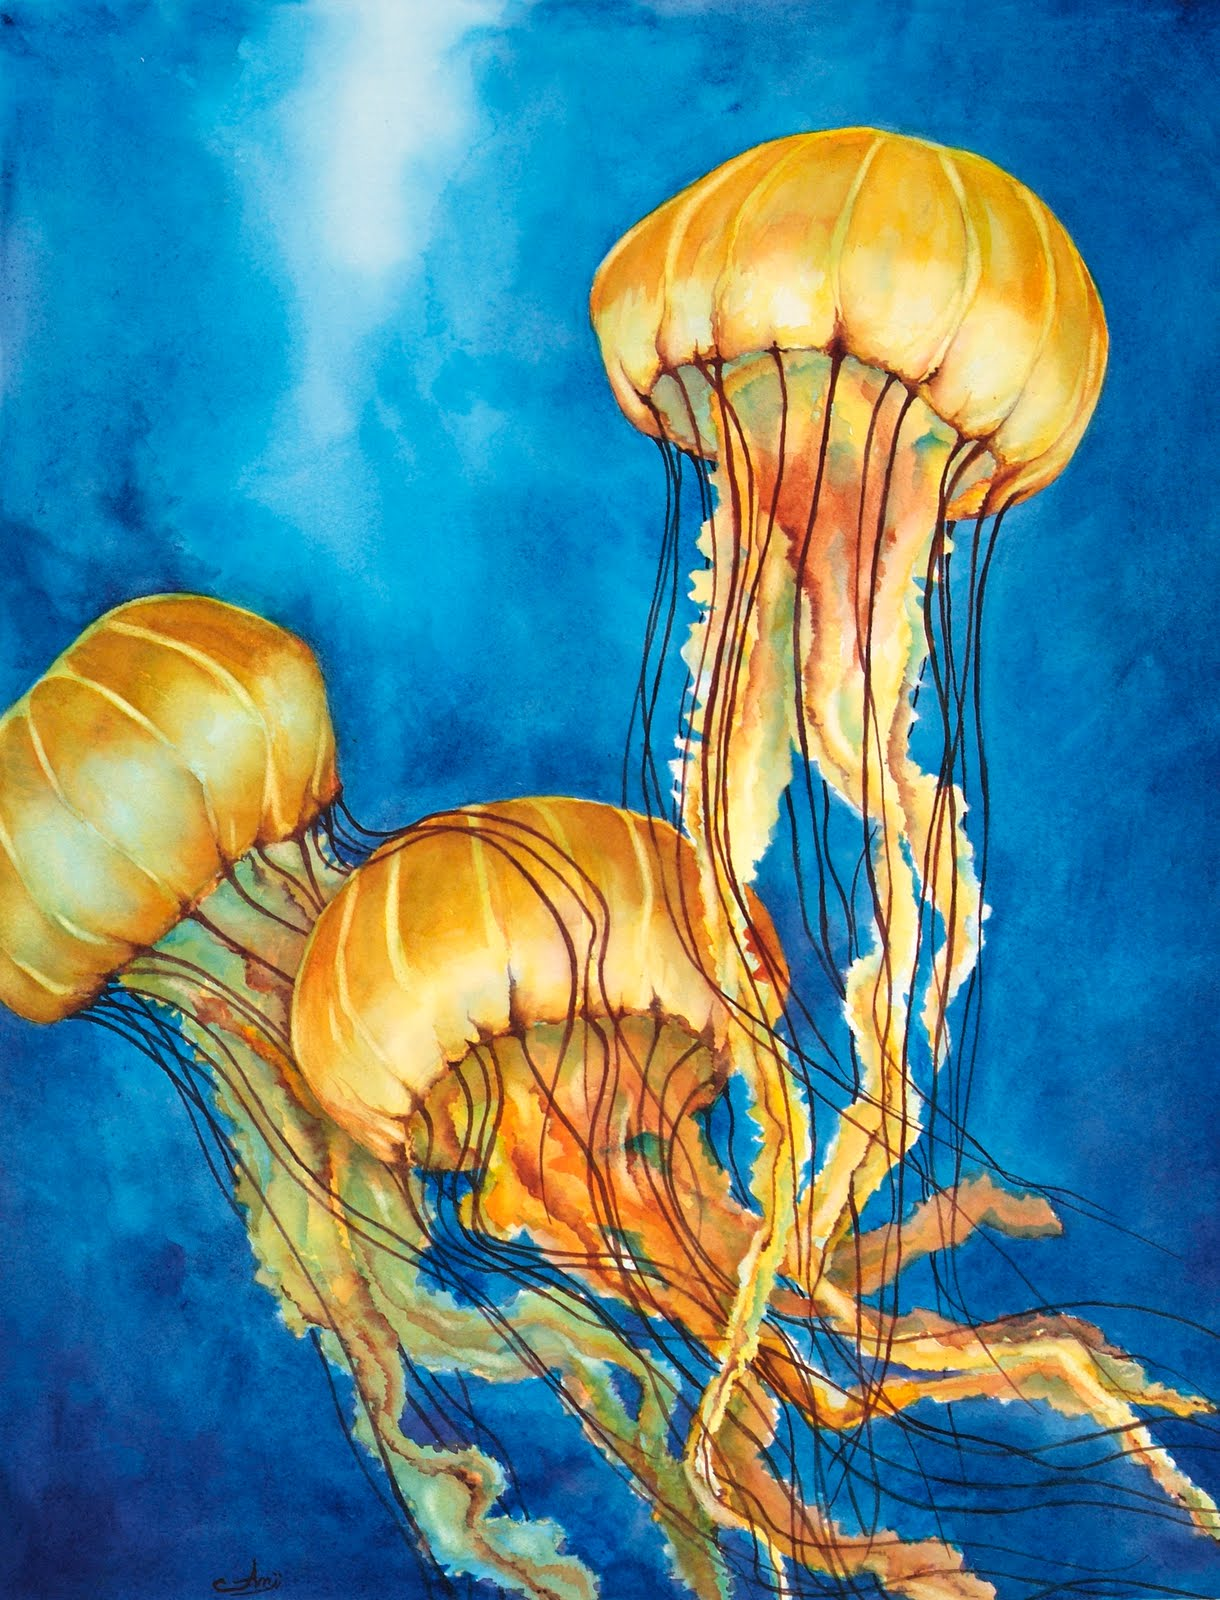 Watercolor artist morning dance for Jelly fish painting